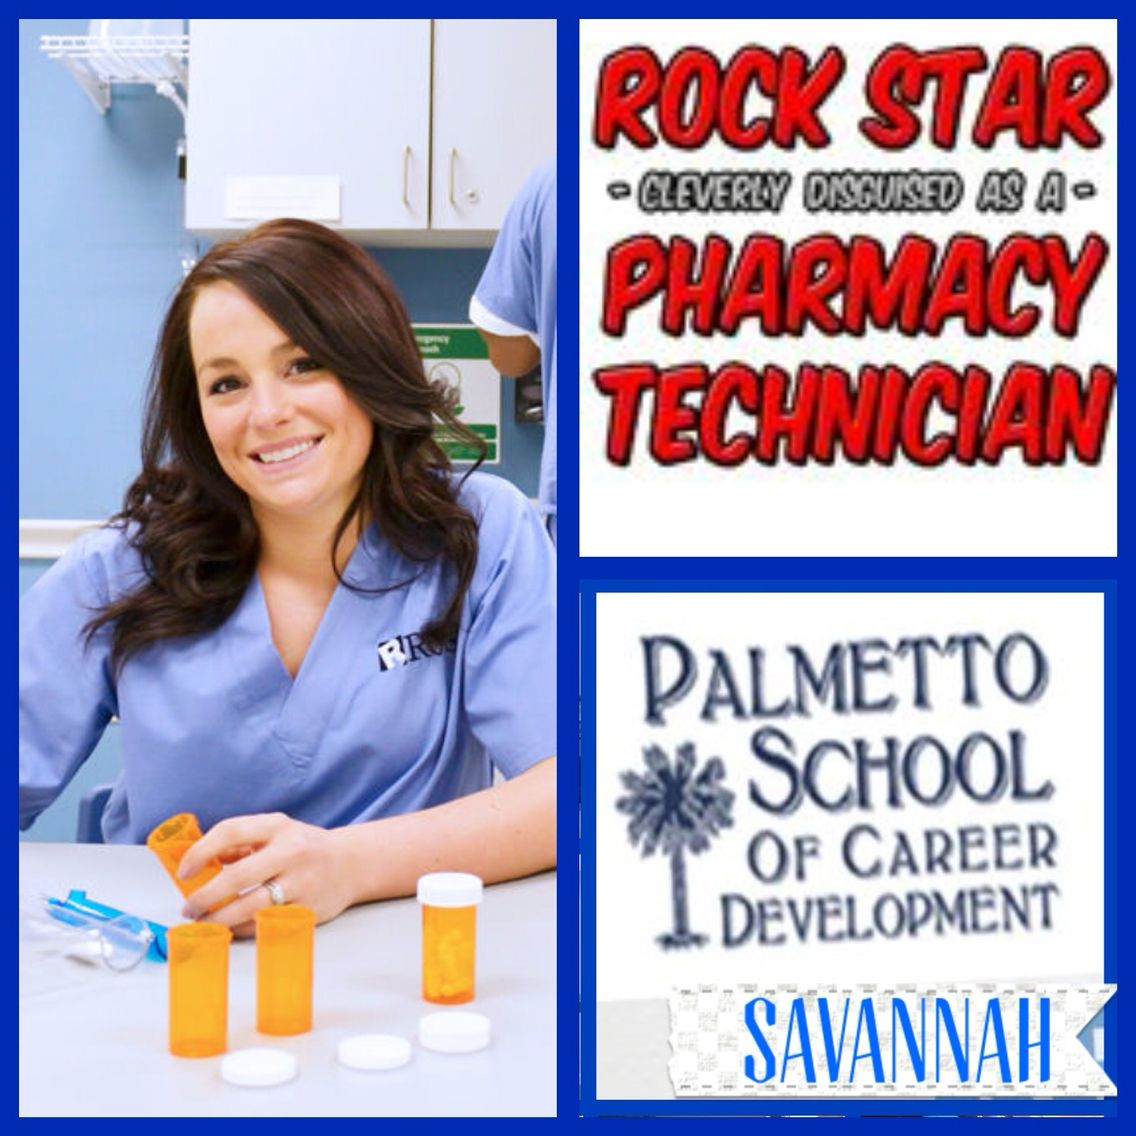 a pharmacy technician in only 12 weeks at PSCDSav